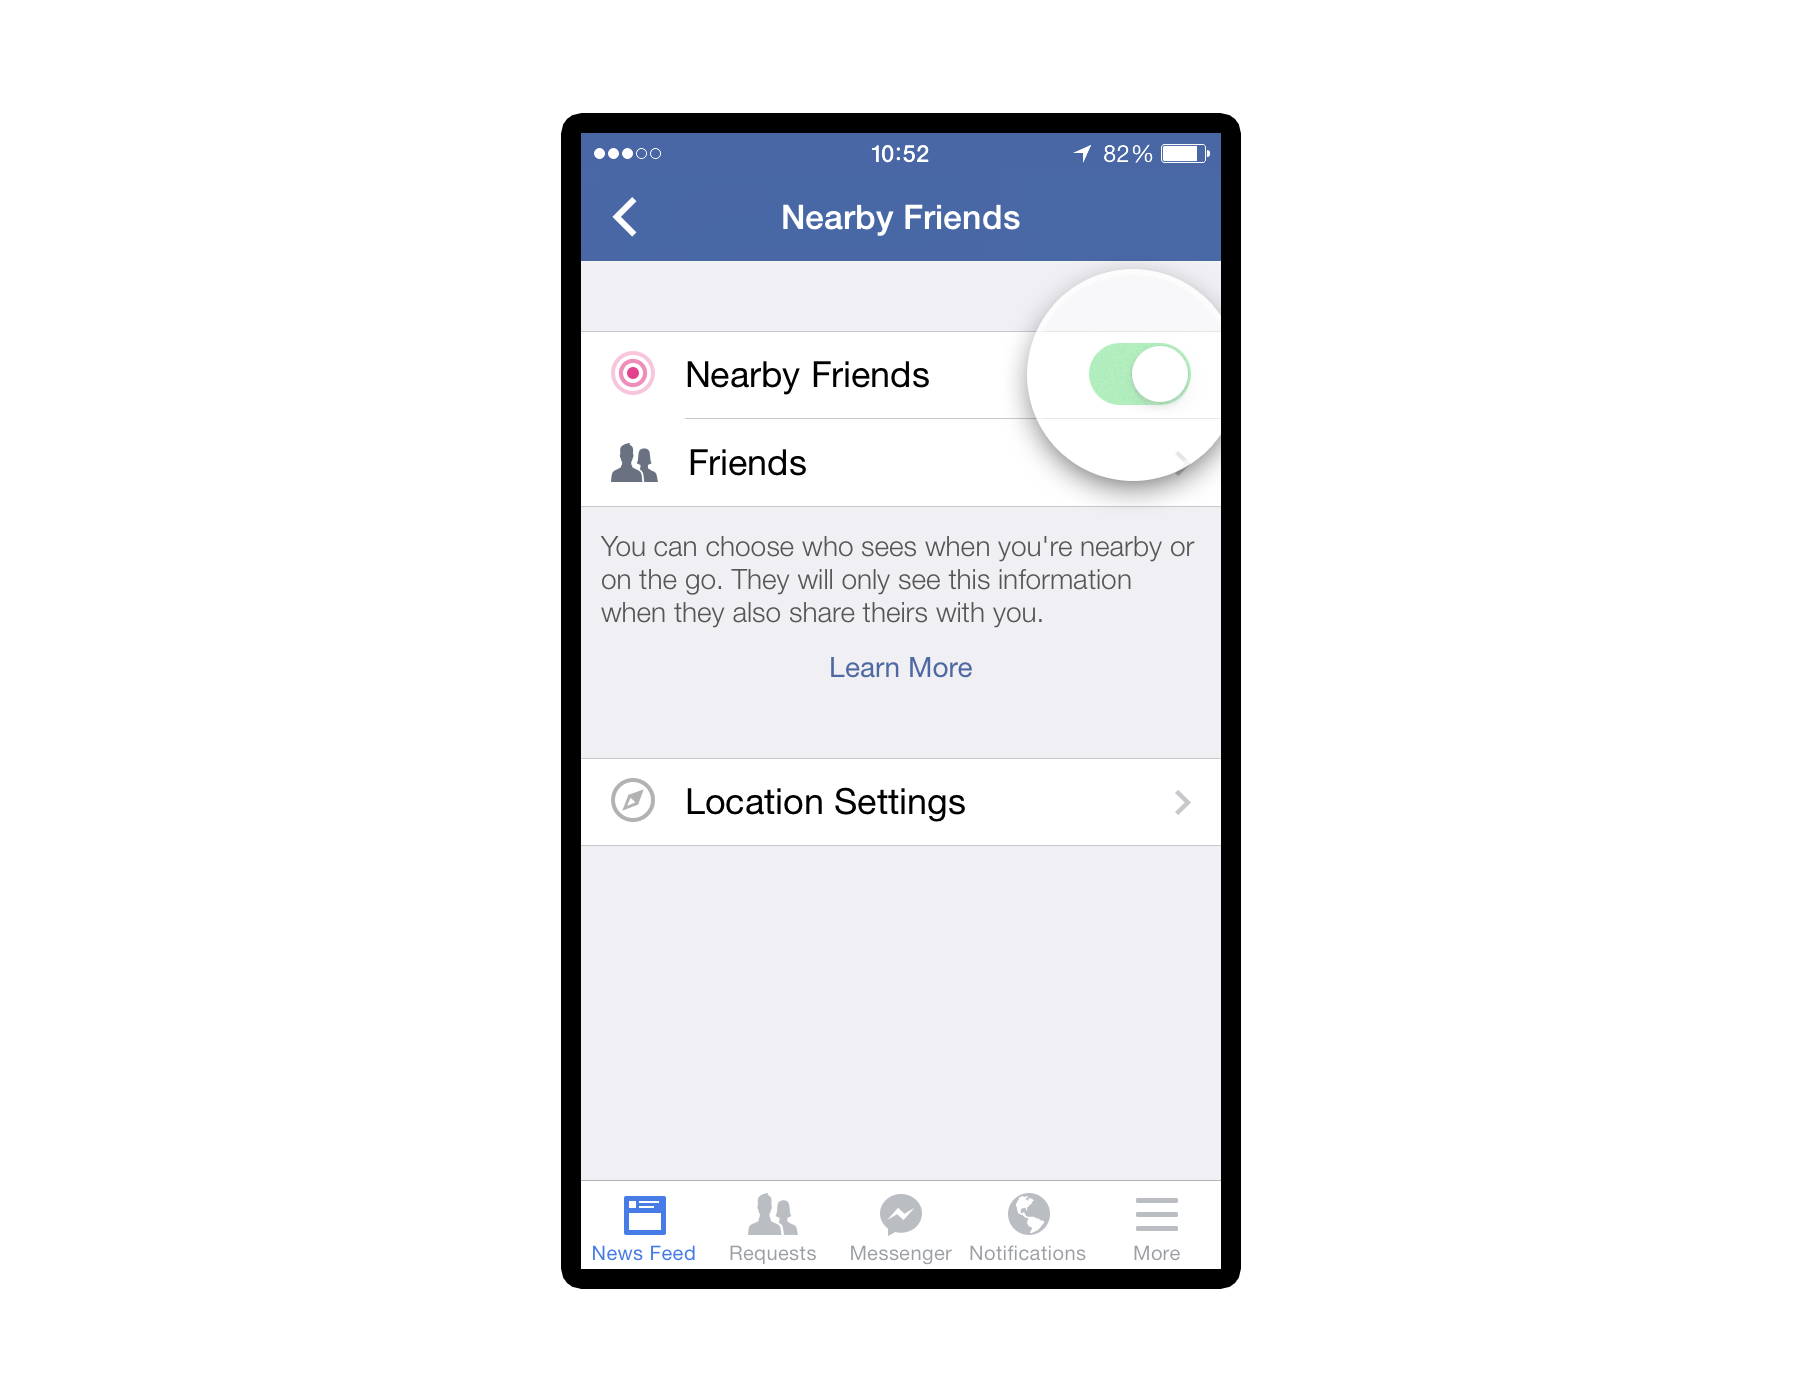 nearby friends press 2 Facebook launches optional Nearby Friends feature for Android and iOS